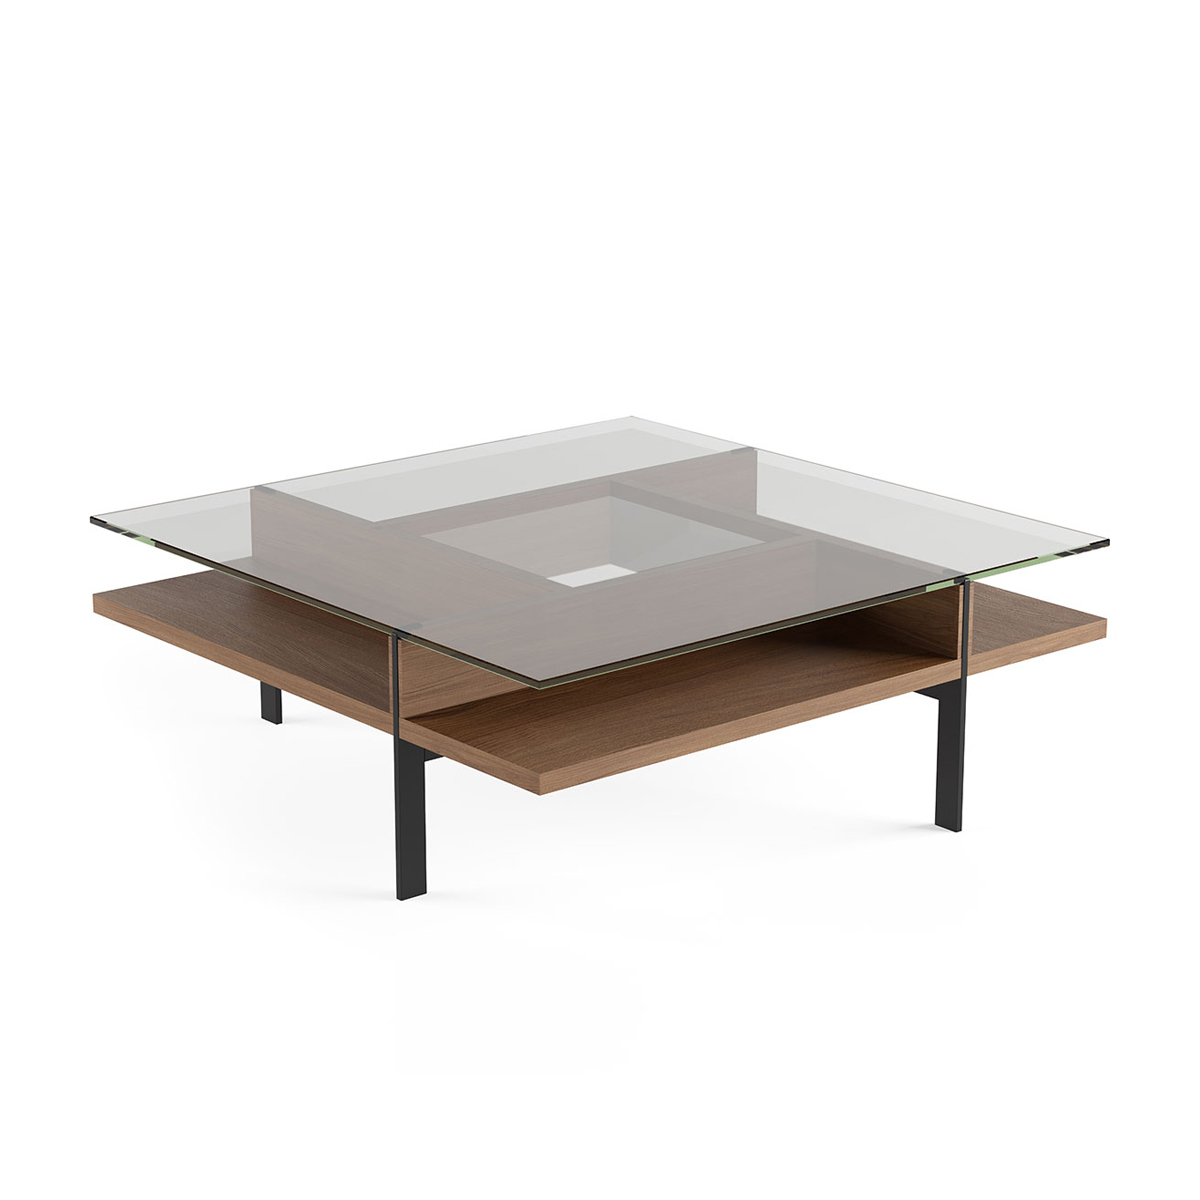 Jerome S Square Coffee Table: Terrace Square Coffee Table 1150